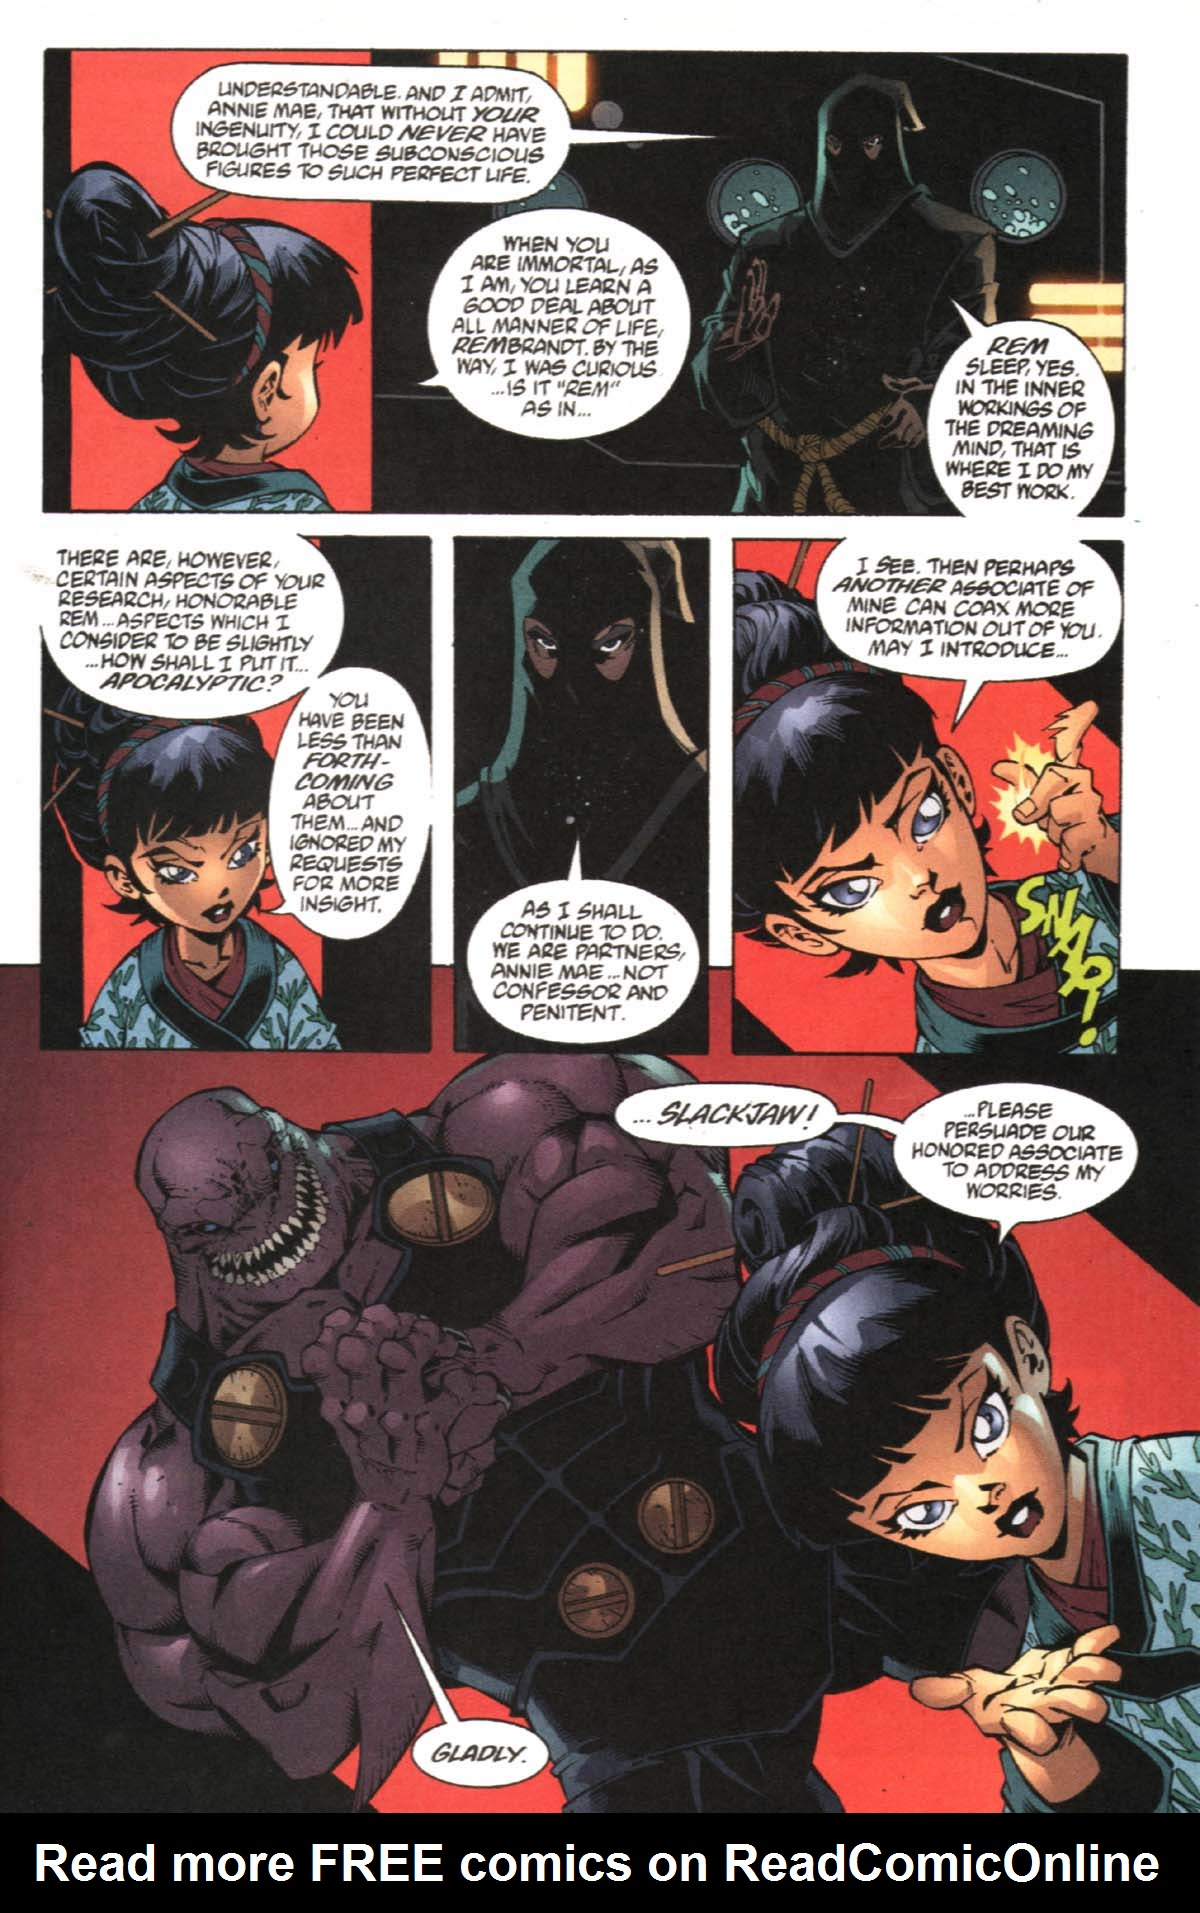 Read online SpyBoy/Young Justice comic -  Issue #1 - 17